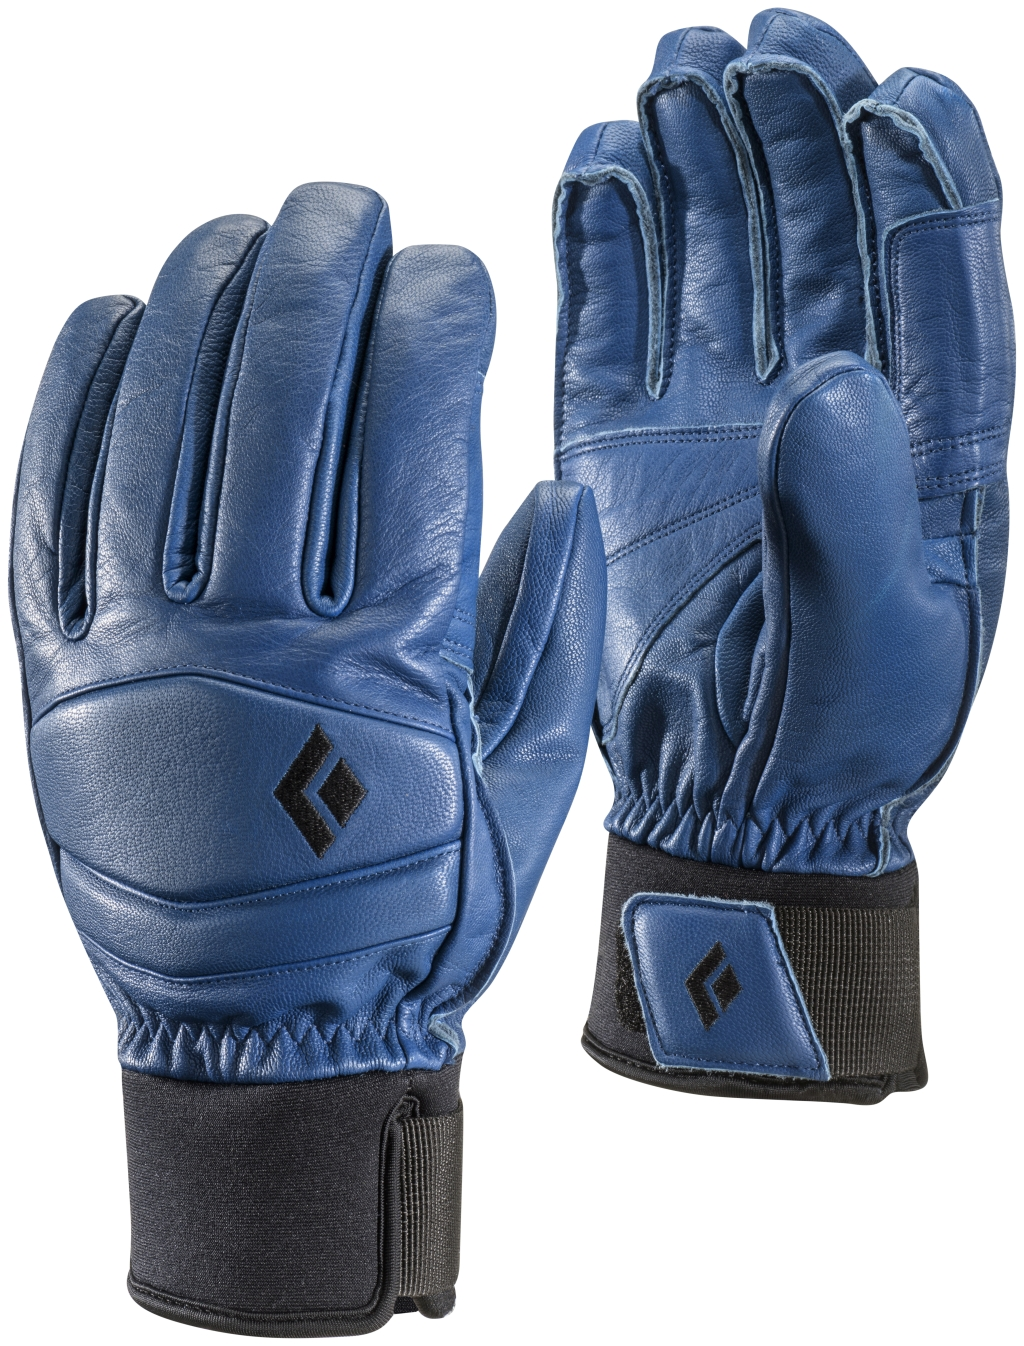 Black Diamond Spark Gloves Denim-30